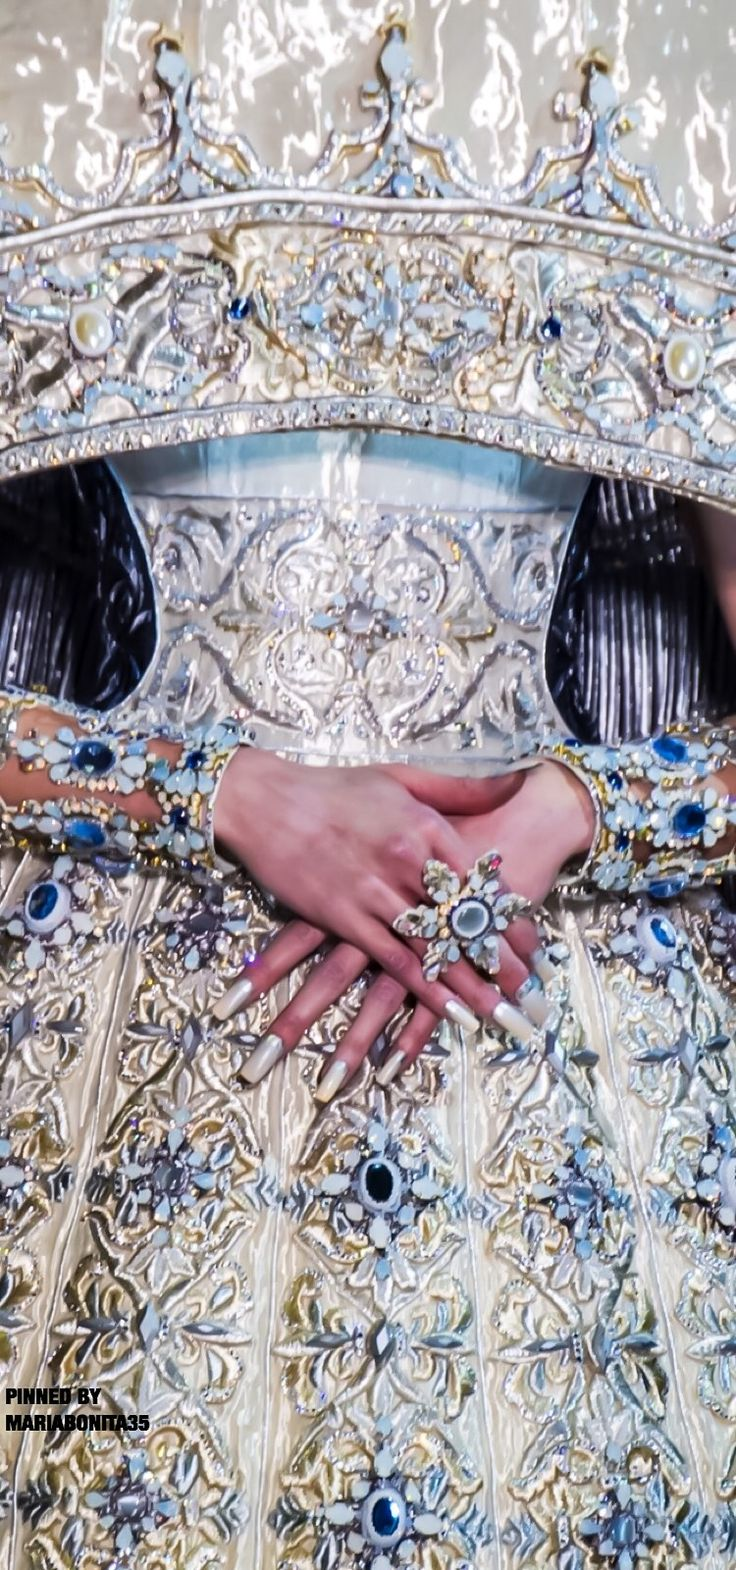 Gou Pei Haute Couture SS17 - Balmain inspiration he would design gowns for his customers and put them in richly embroidered pieces like this modern one.